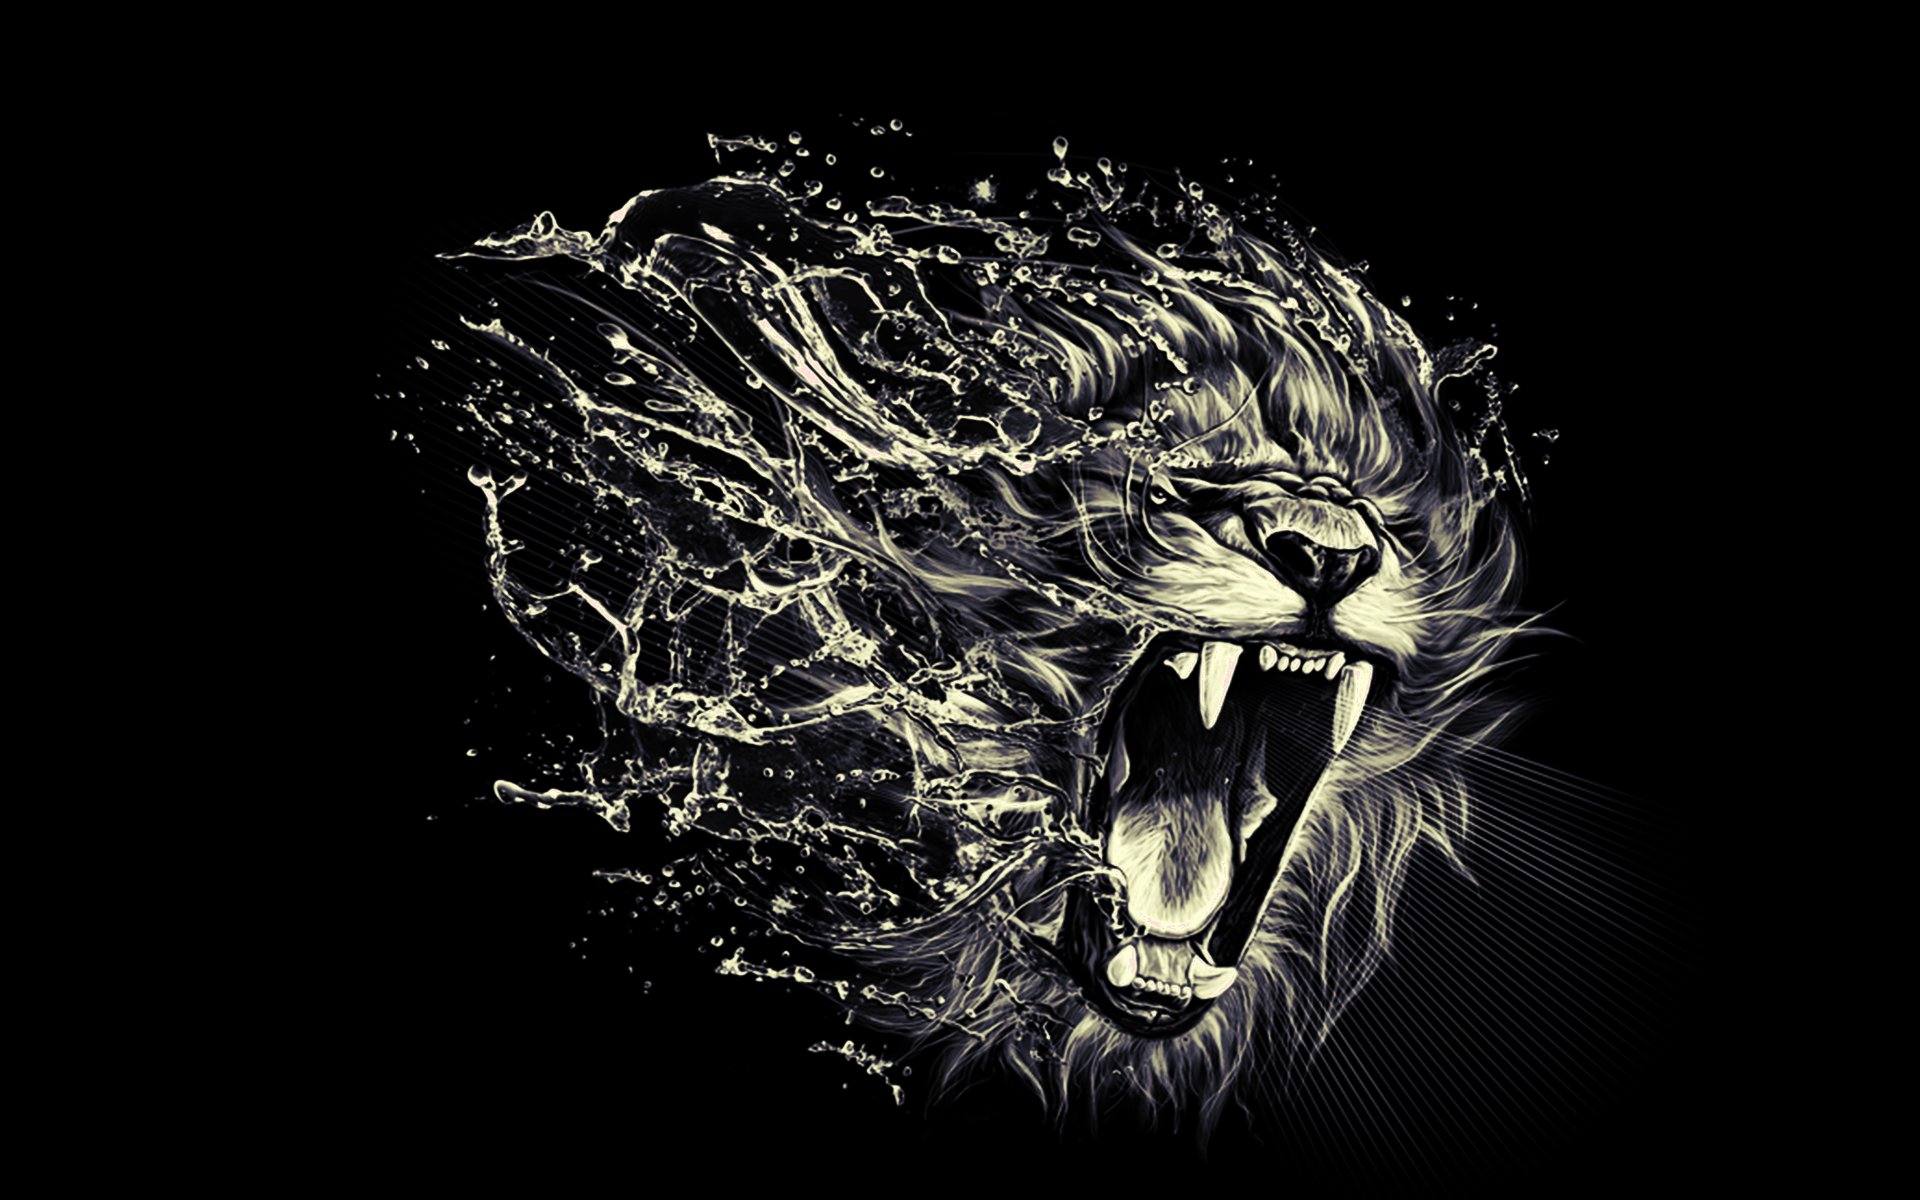 Cool Lion Wallpaper - WallpaperSafari